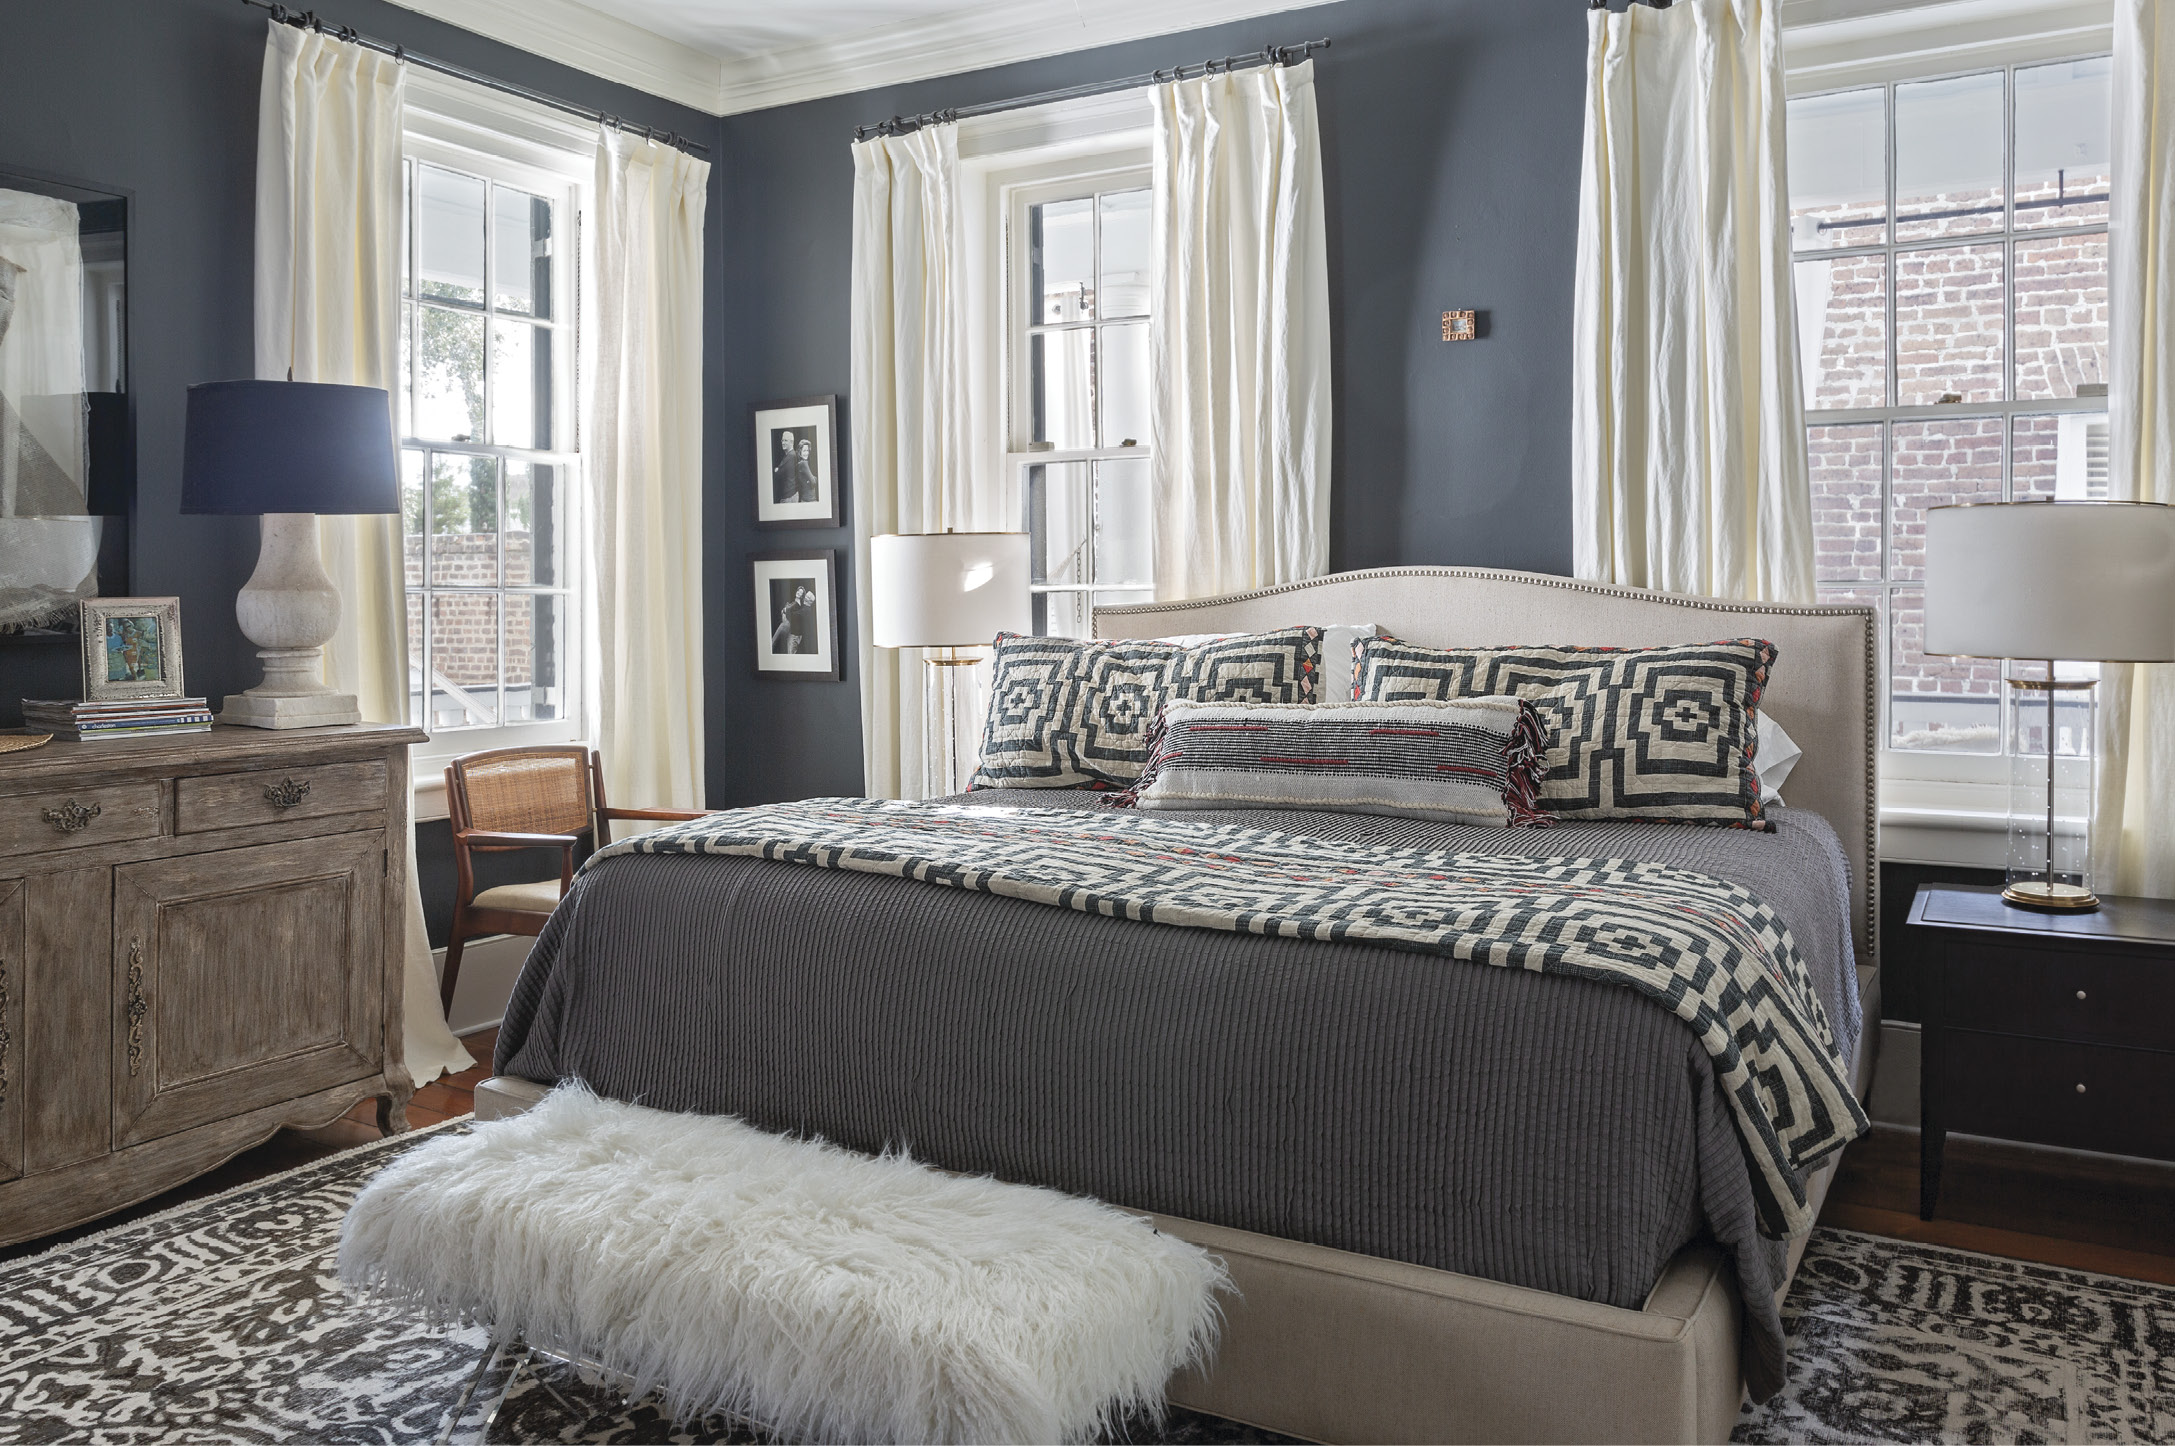 Boho Bedrooms: Justina Blakeney bedding adds a Bohemian touch to the light-filled master bedroom.